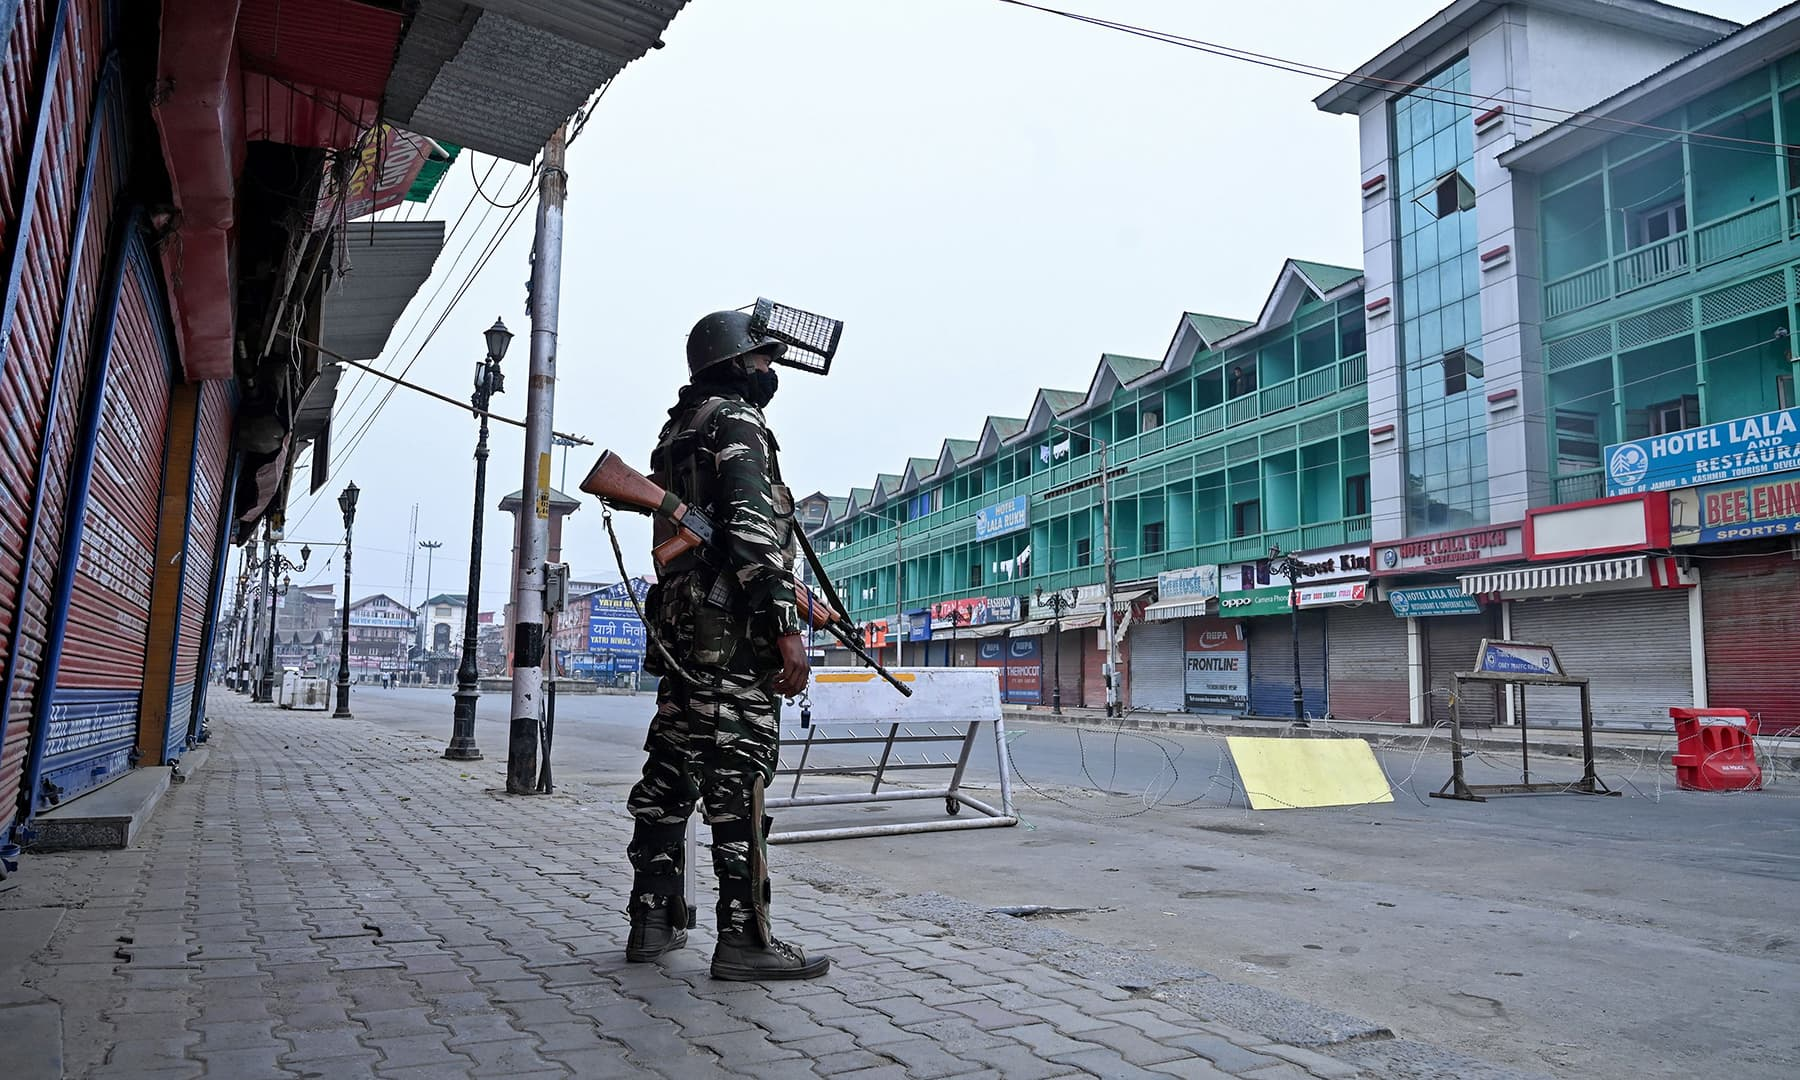 Indian police tighten restrictions in occupied Kashmir after PM Imran's UNGA speech